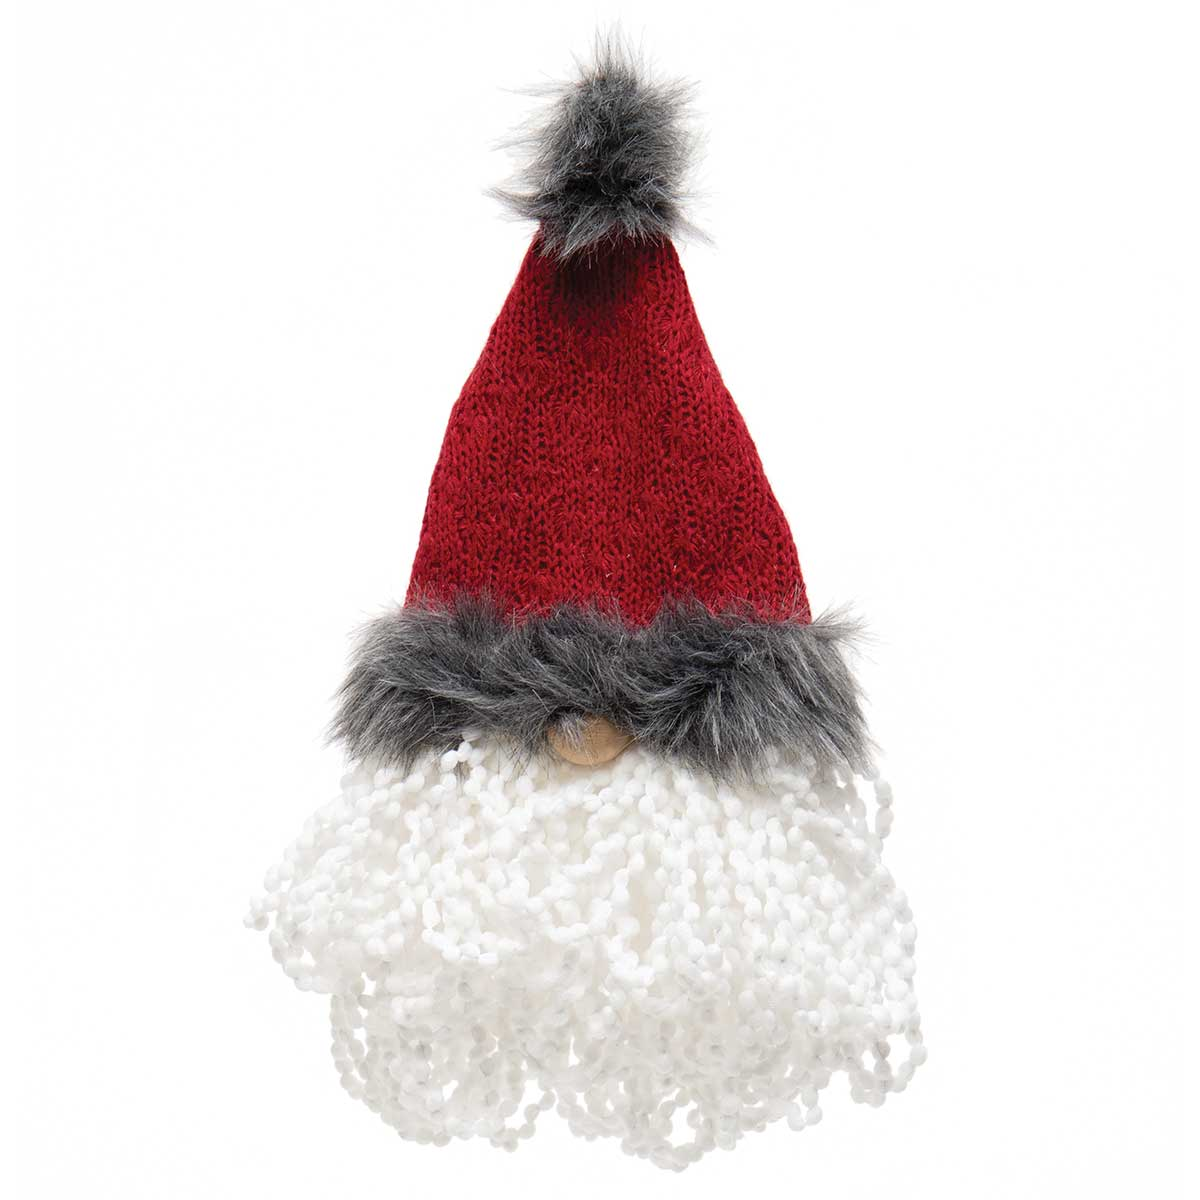 RAGLAN BEARD GNOME FACE BURGUNDY/GREY WITH FUR POM-POM